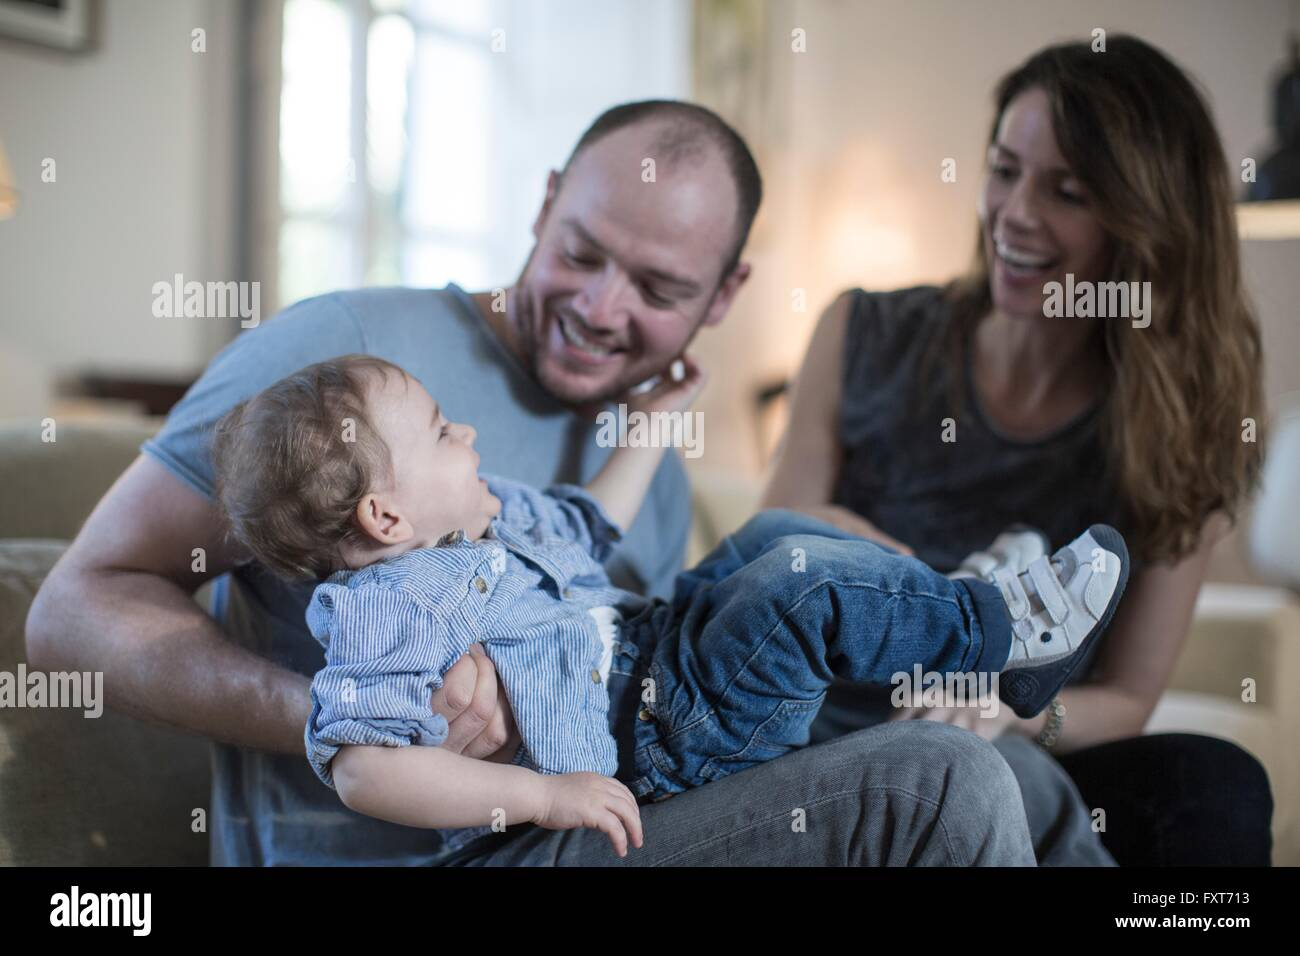 Parents sitting playing with smiling baby boy - Stock Image